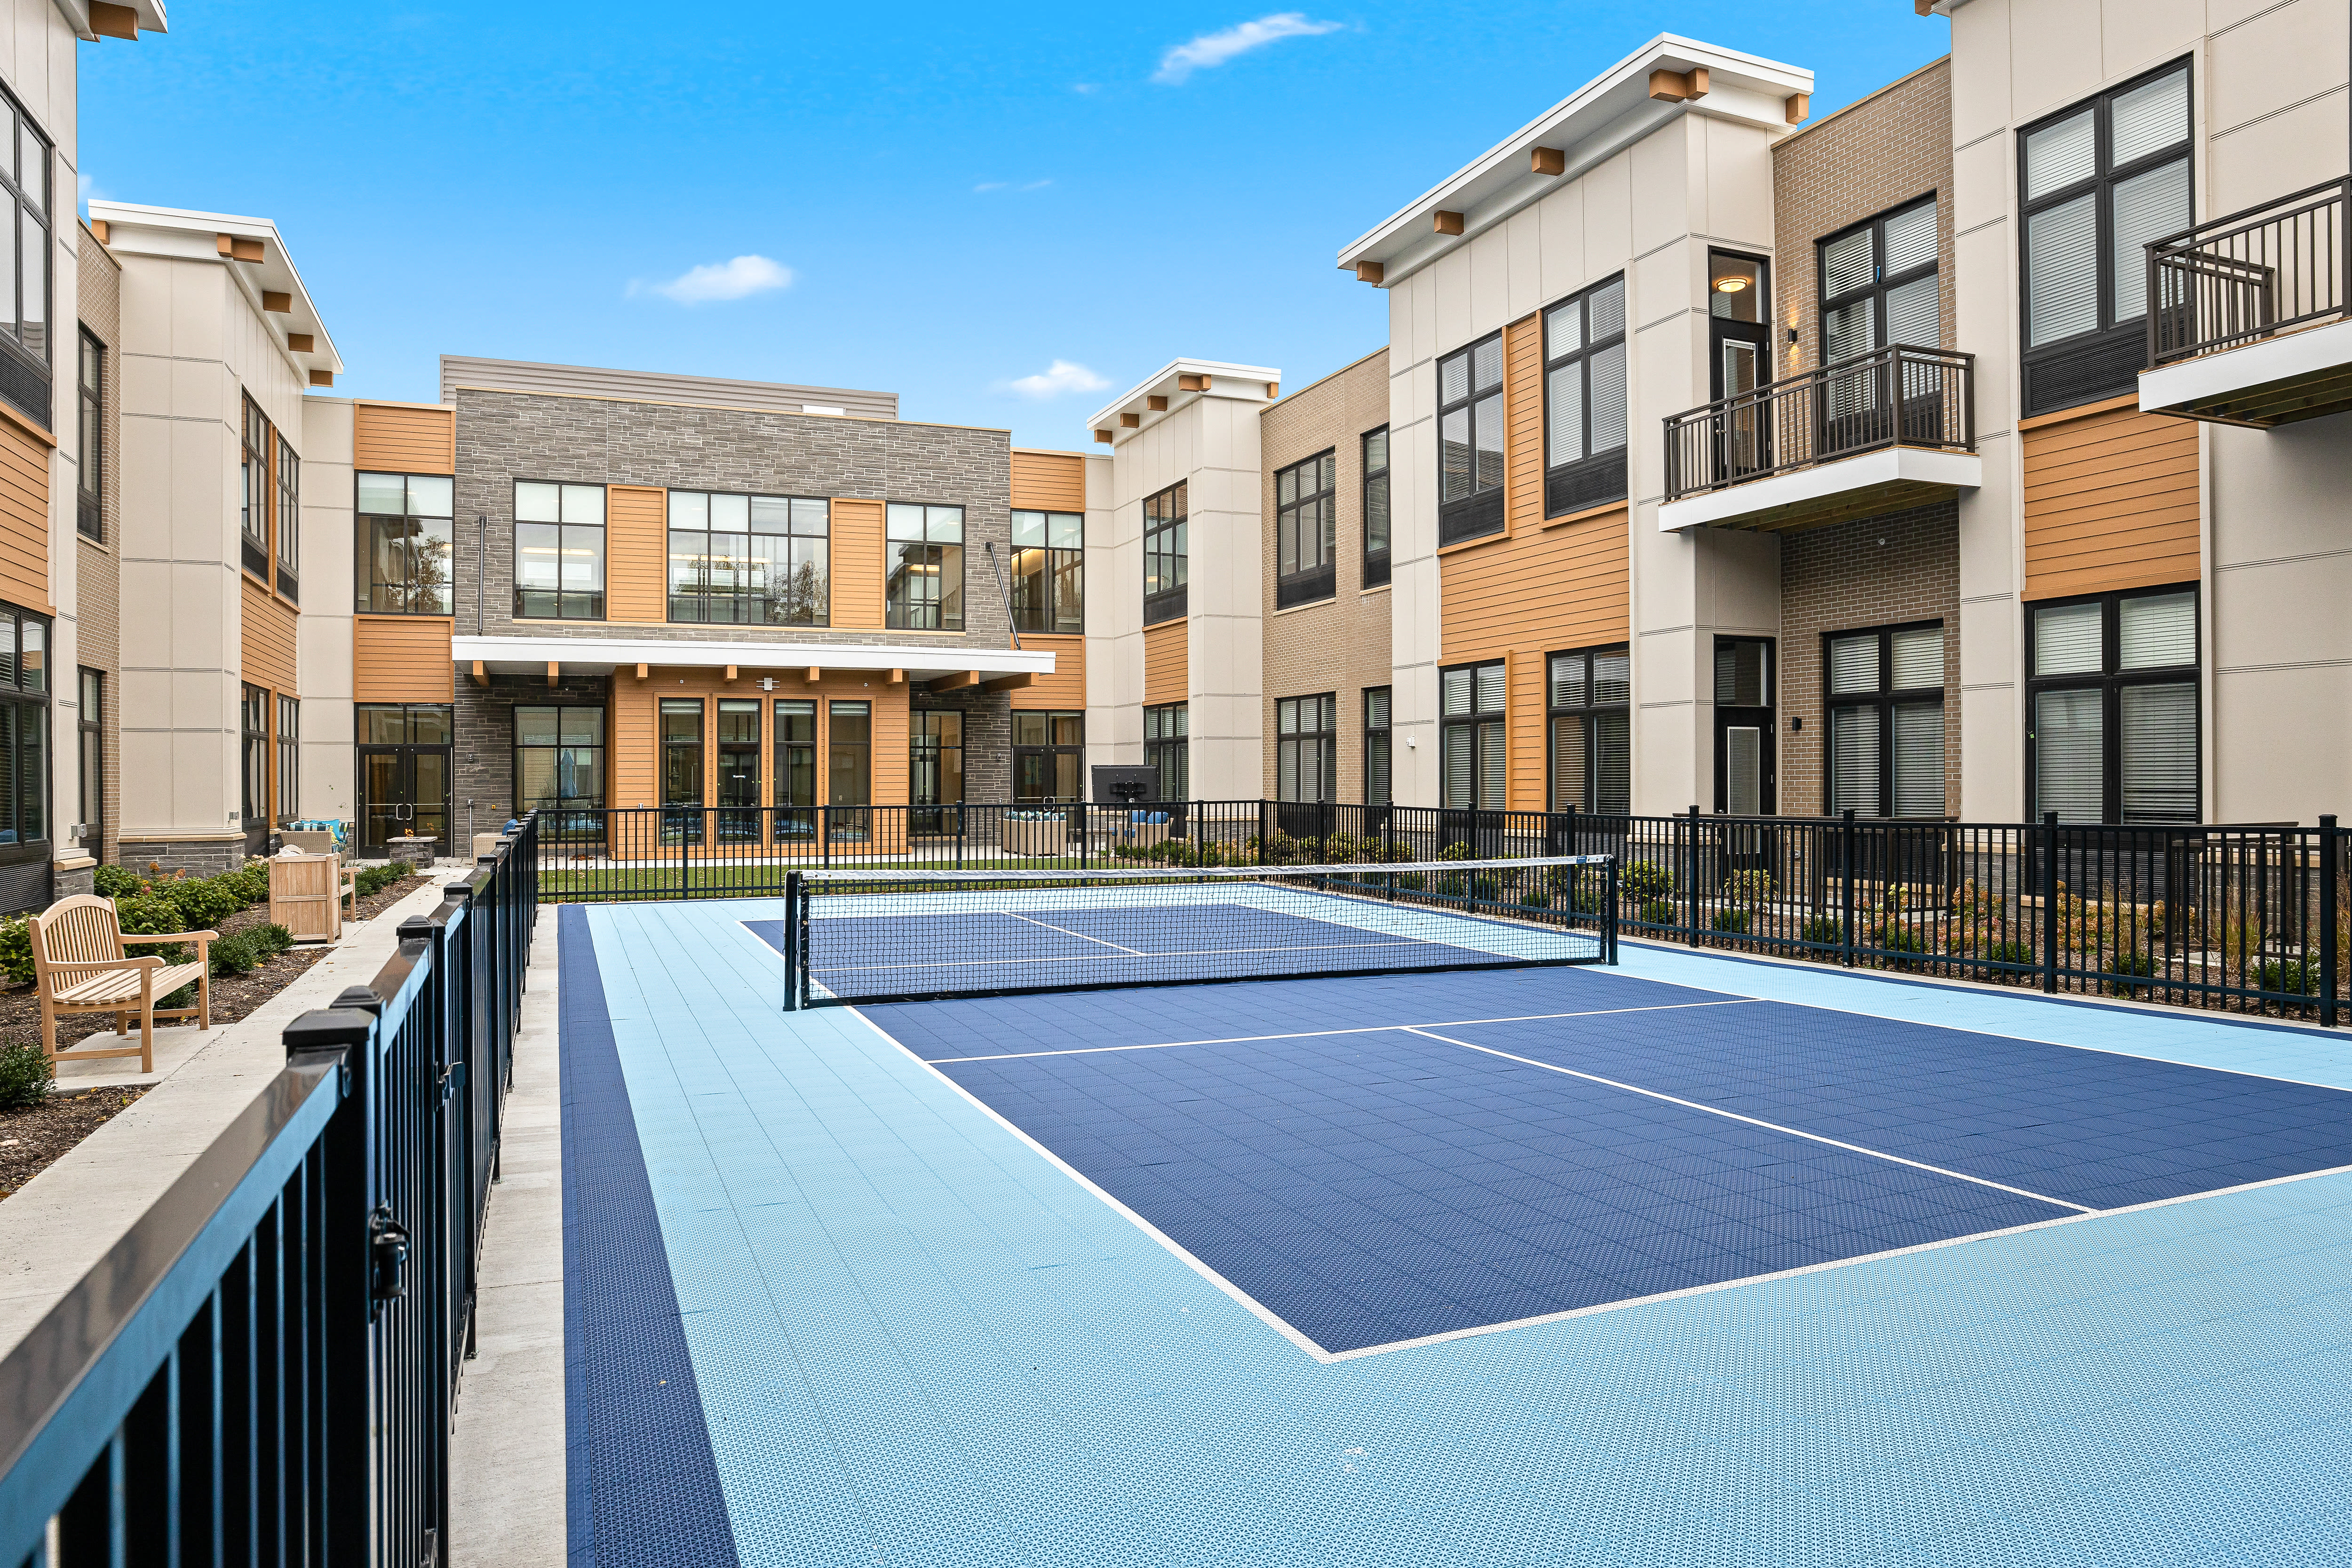 Outdoor Tennis Court Anthology of Mayfield Heights - NOW OPEN! in Mayfield Heights, Ohio